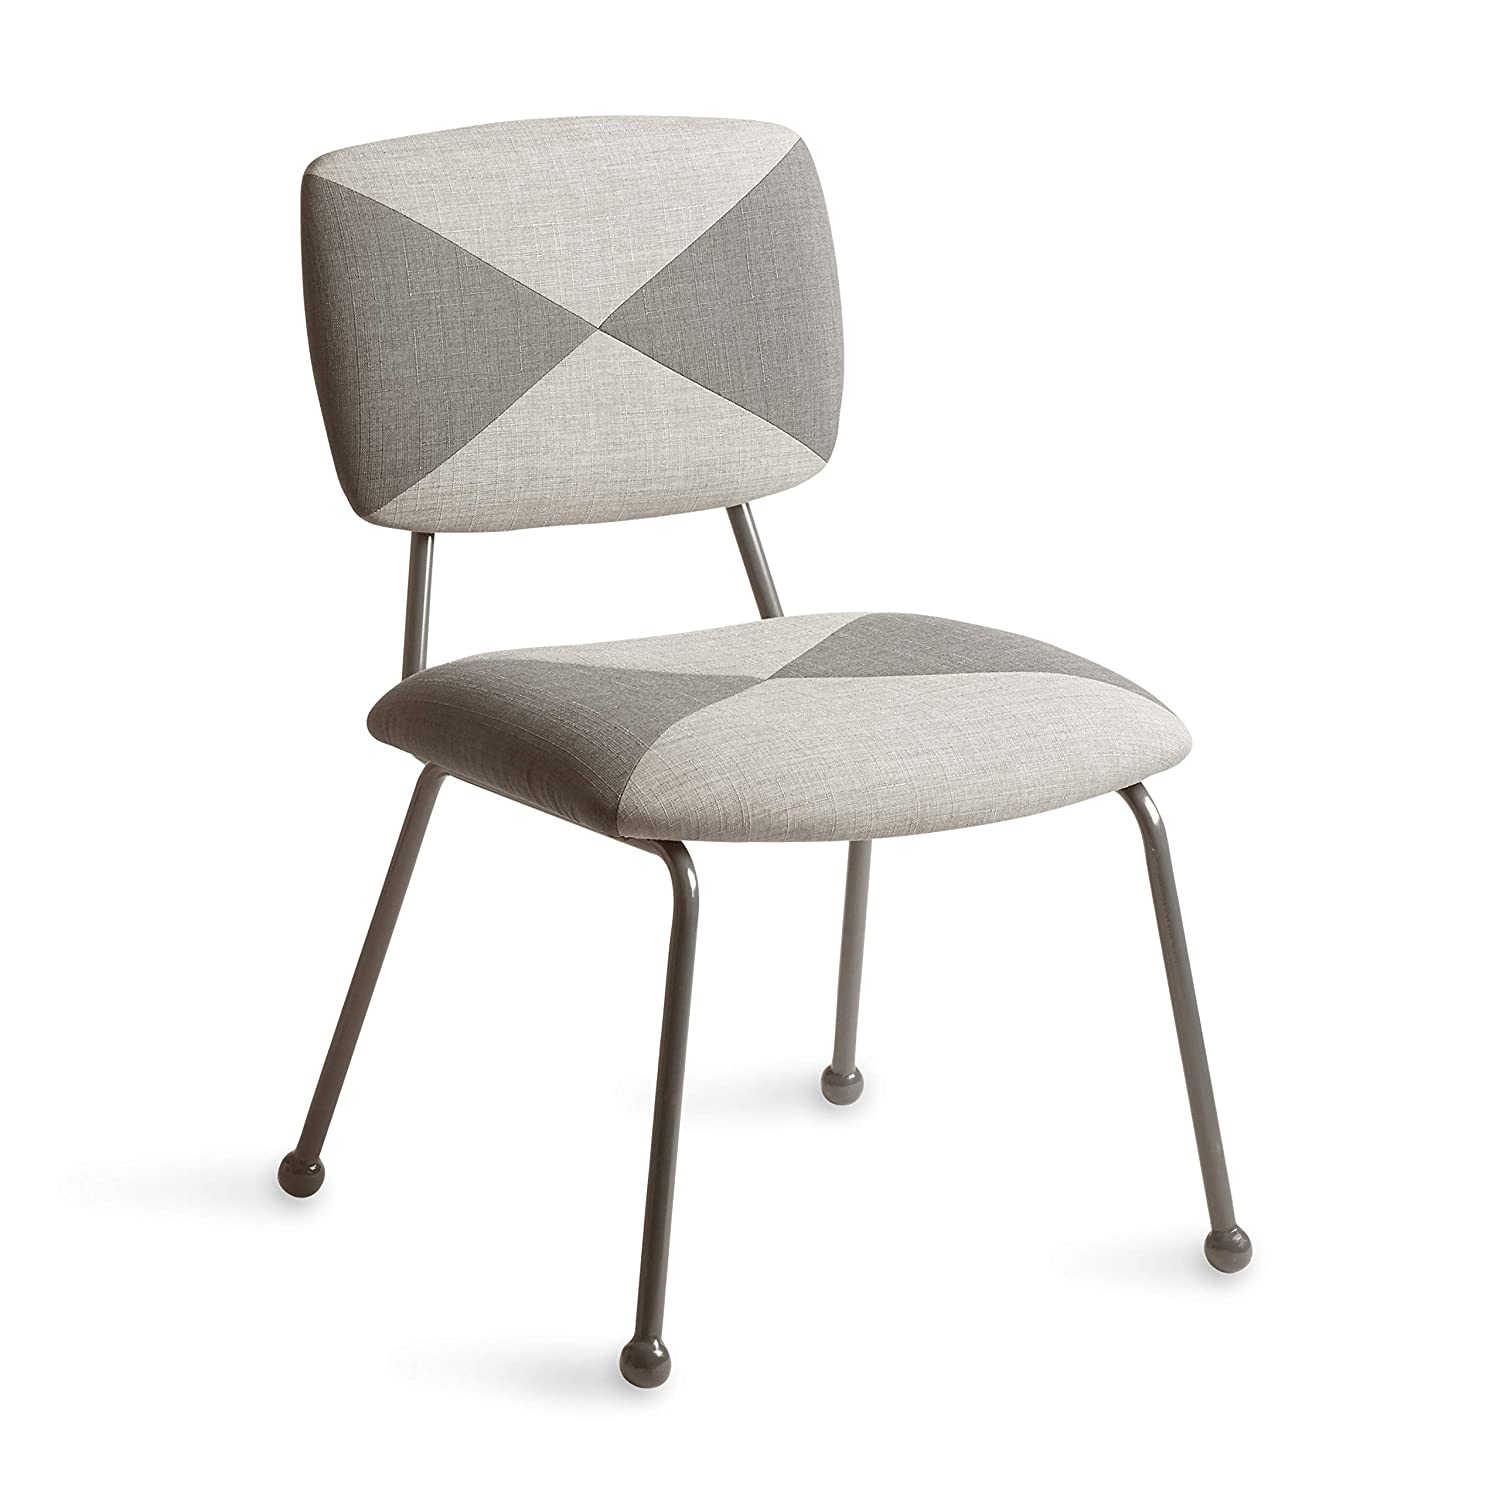 Now House by Jonathan Adler Matteo Upholstered Dining Chair, Praline